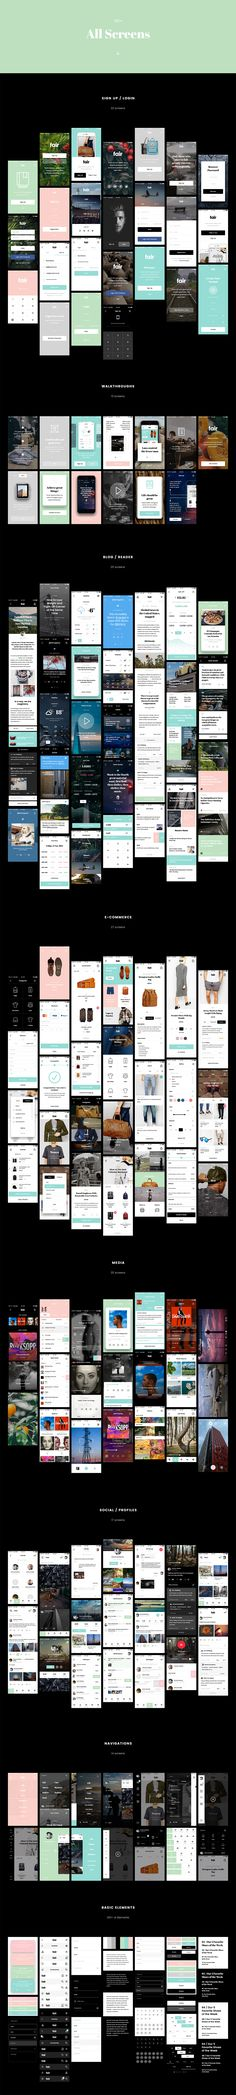 Fair UI Kit (140+ iOS screens) by Komol Kuchkarov on @creativemarket